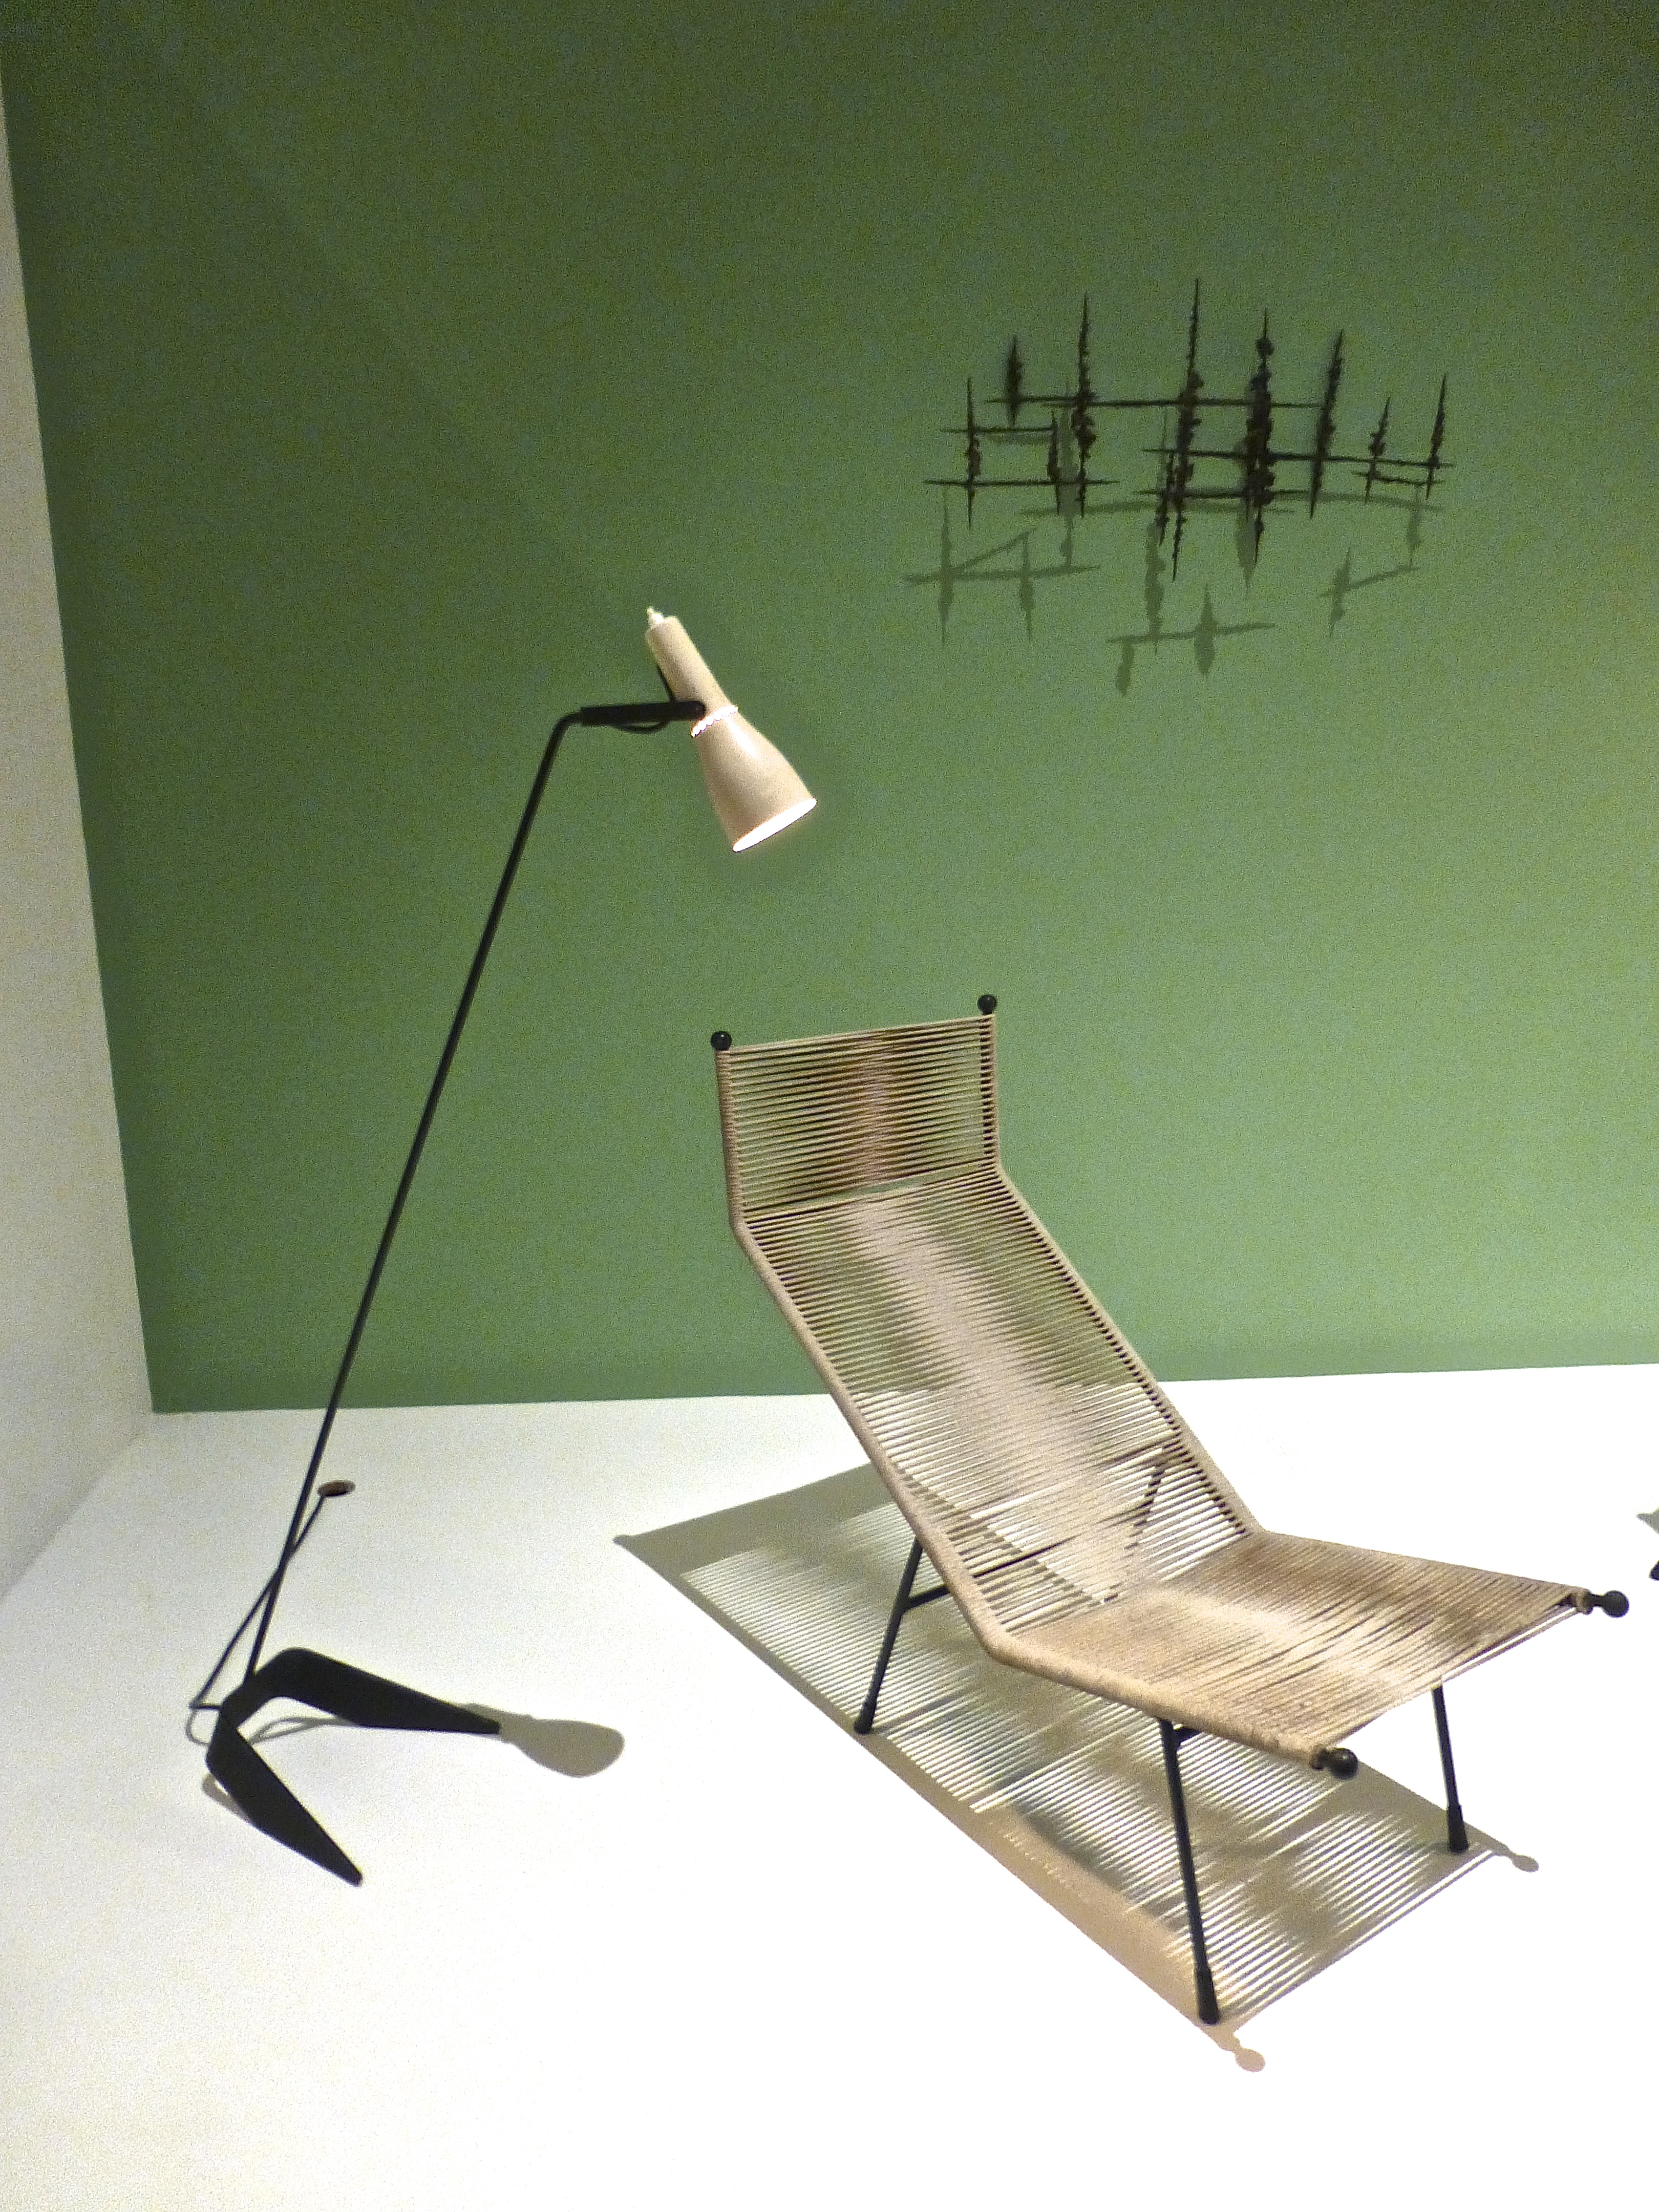 Calyx Standard Lamp & Reclining Chair by Clement Meadmore, 1953